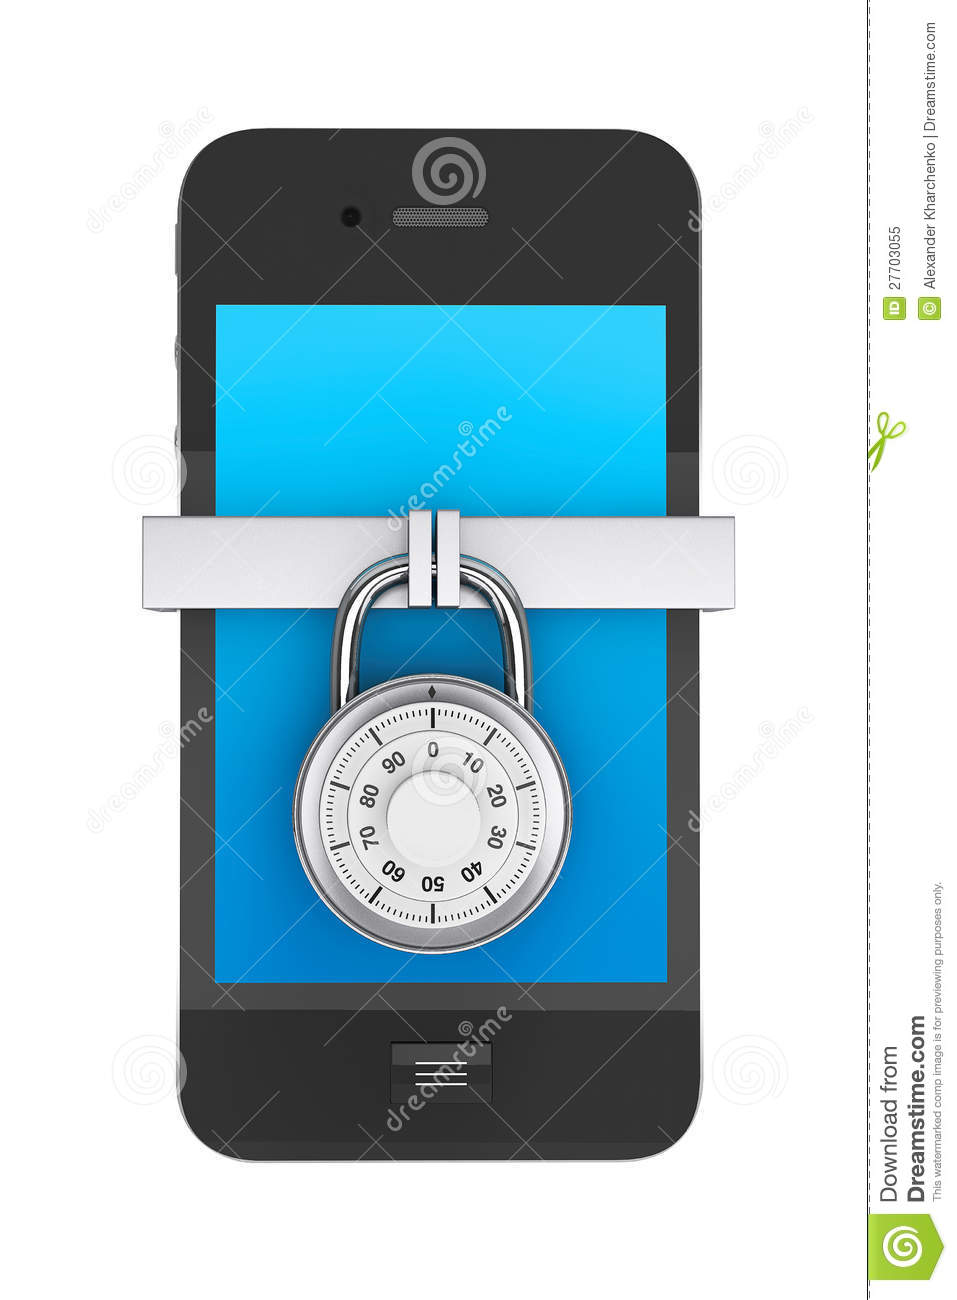 Mobile phone with lock royalty free stock photo image for Mobel lossek